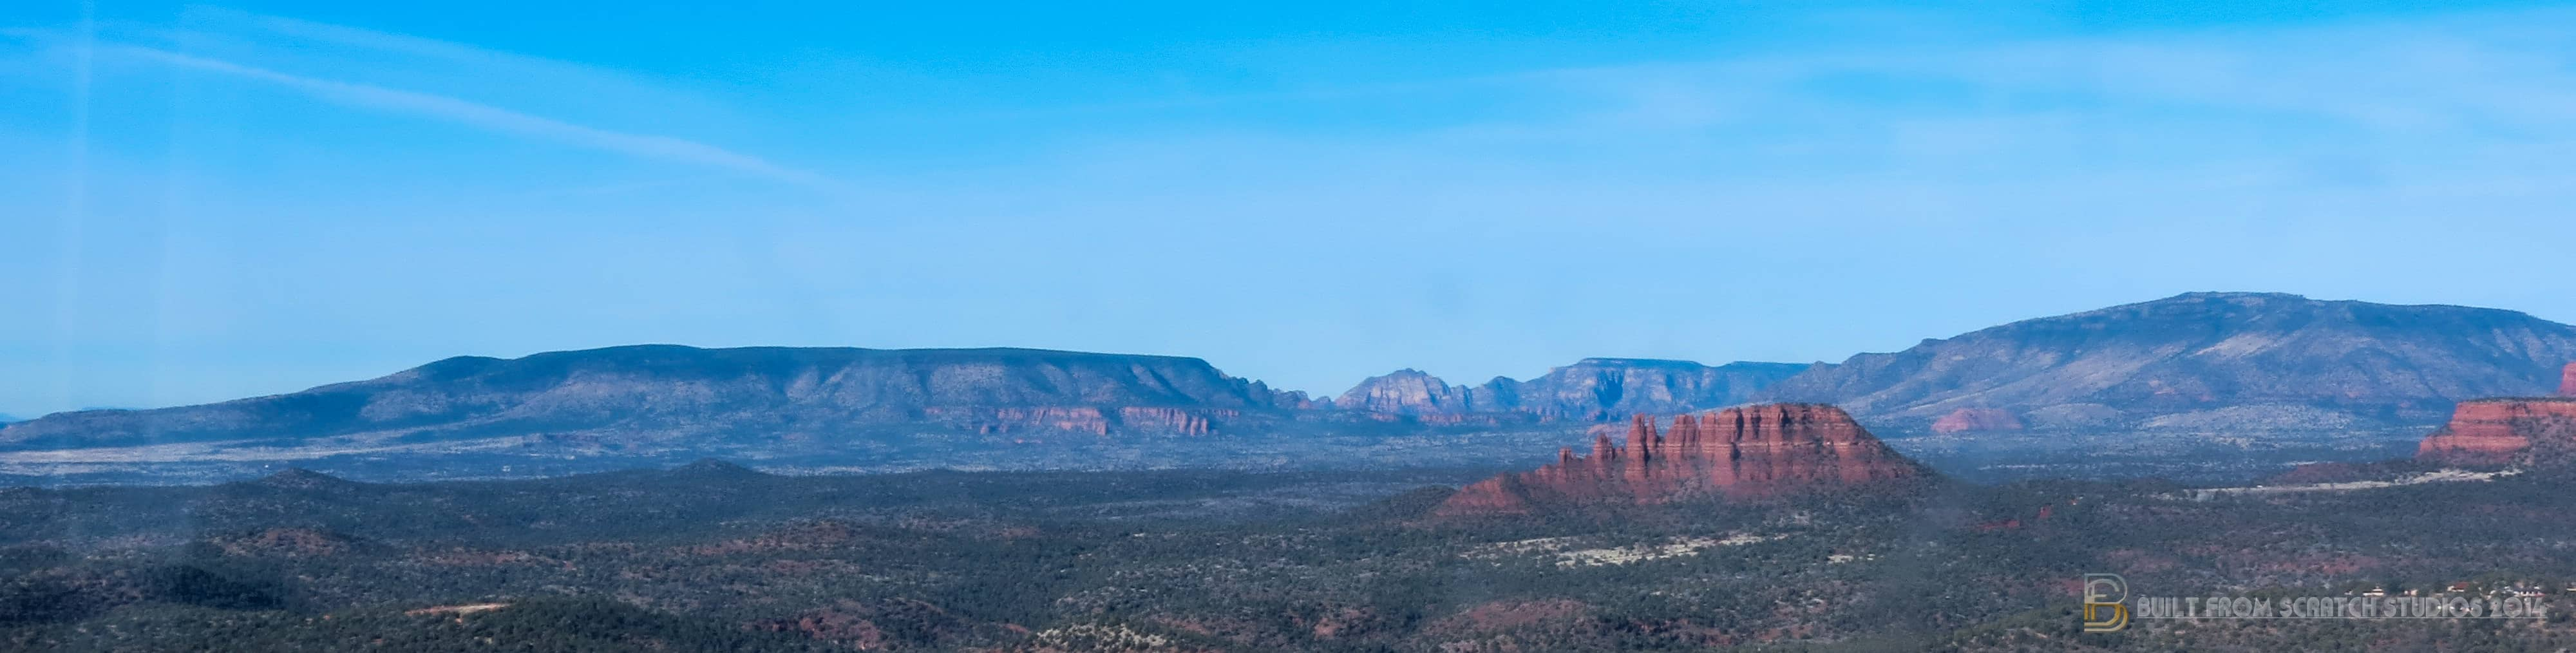 Sedona Arizona Panorama taken by Estevan Bellino and Built From Scratch Studios